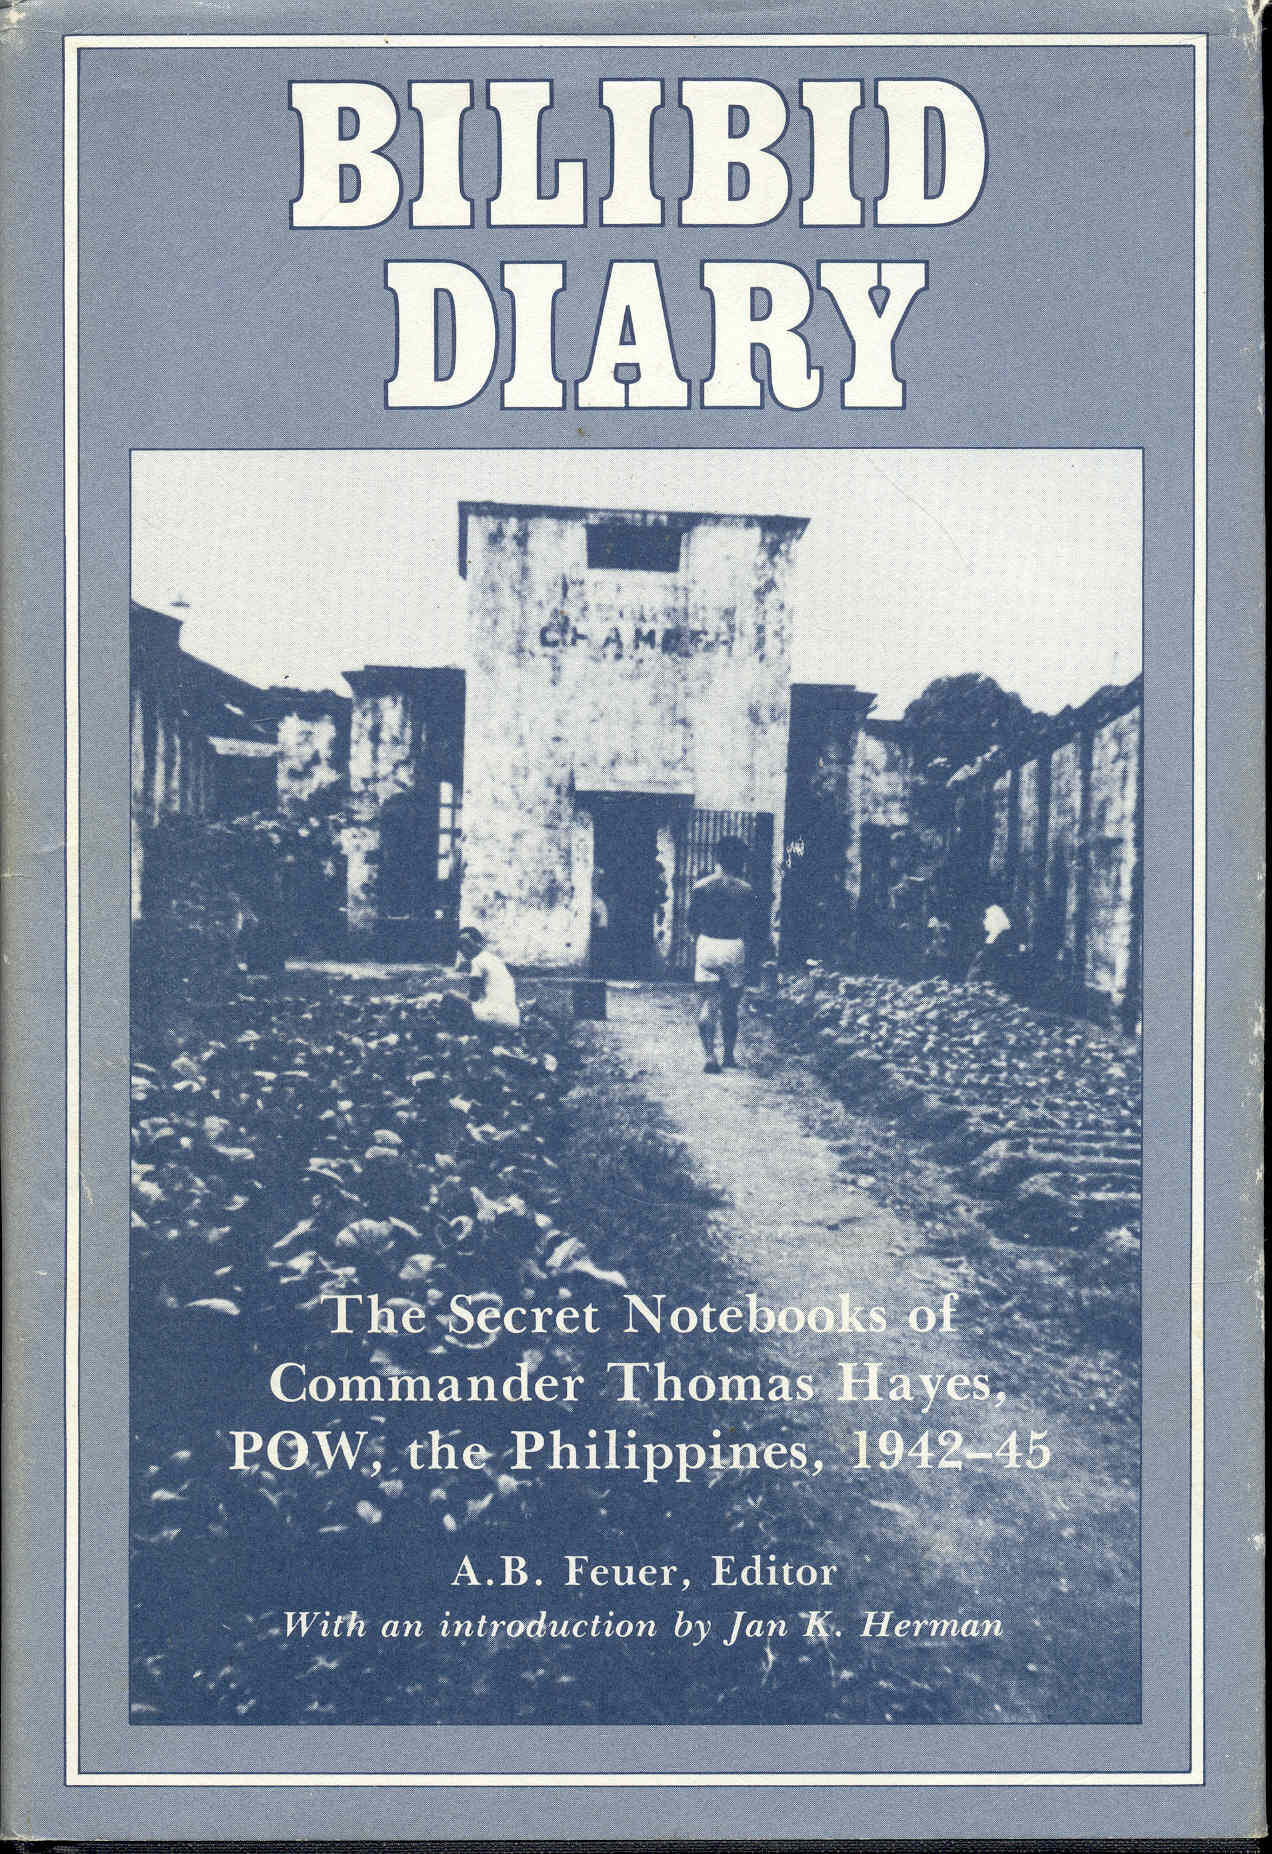 Image for Bilibid Diary: The Secret Notebooks of Commander Thomas Hayes, POW, the Philippines, 1942-45